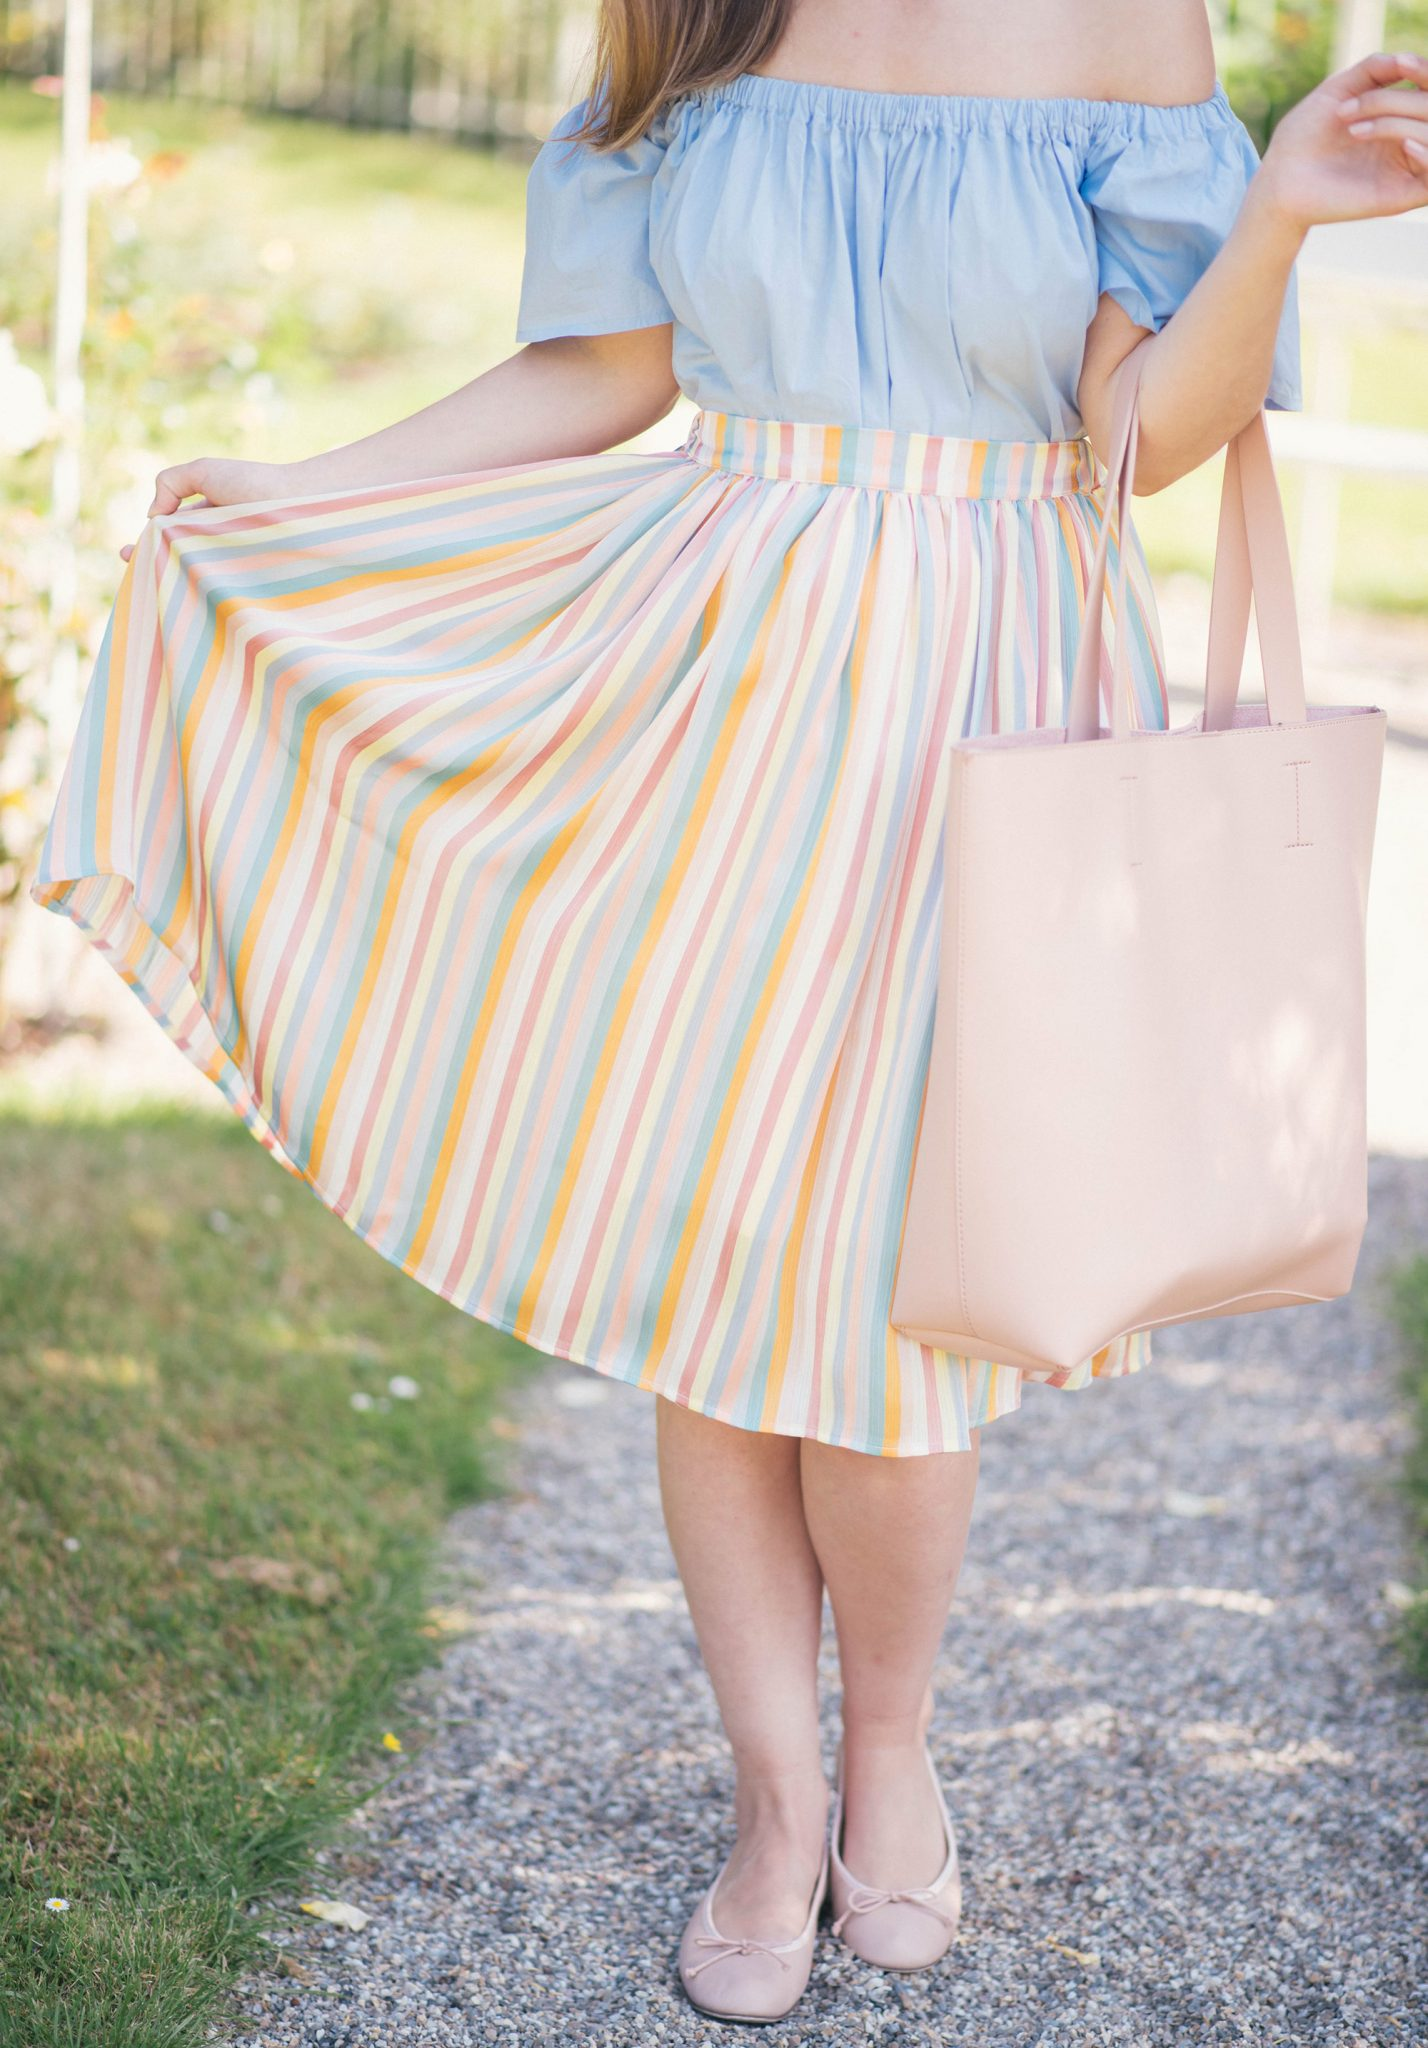 pastel-rainbow-colors-thepetitecat-outfit